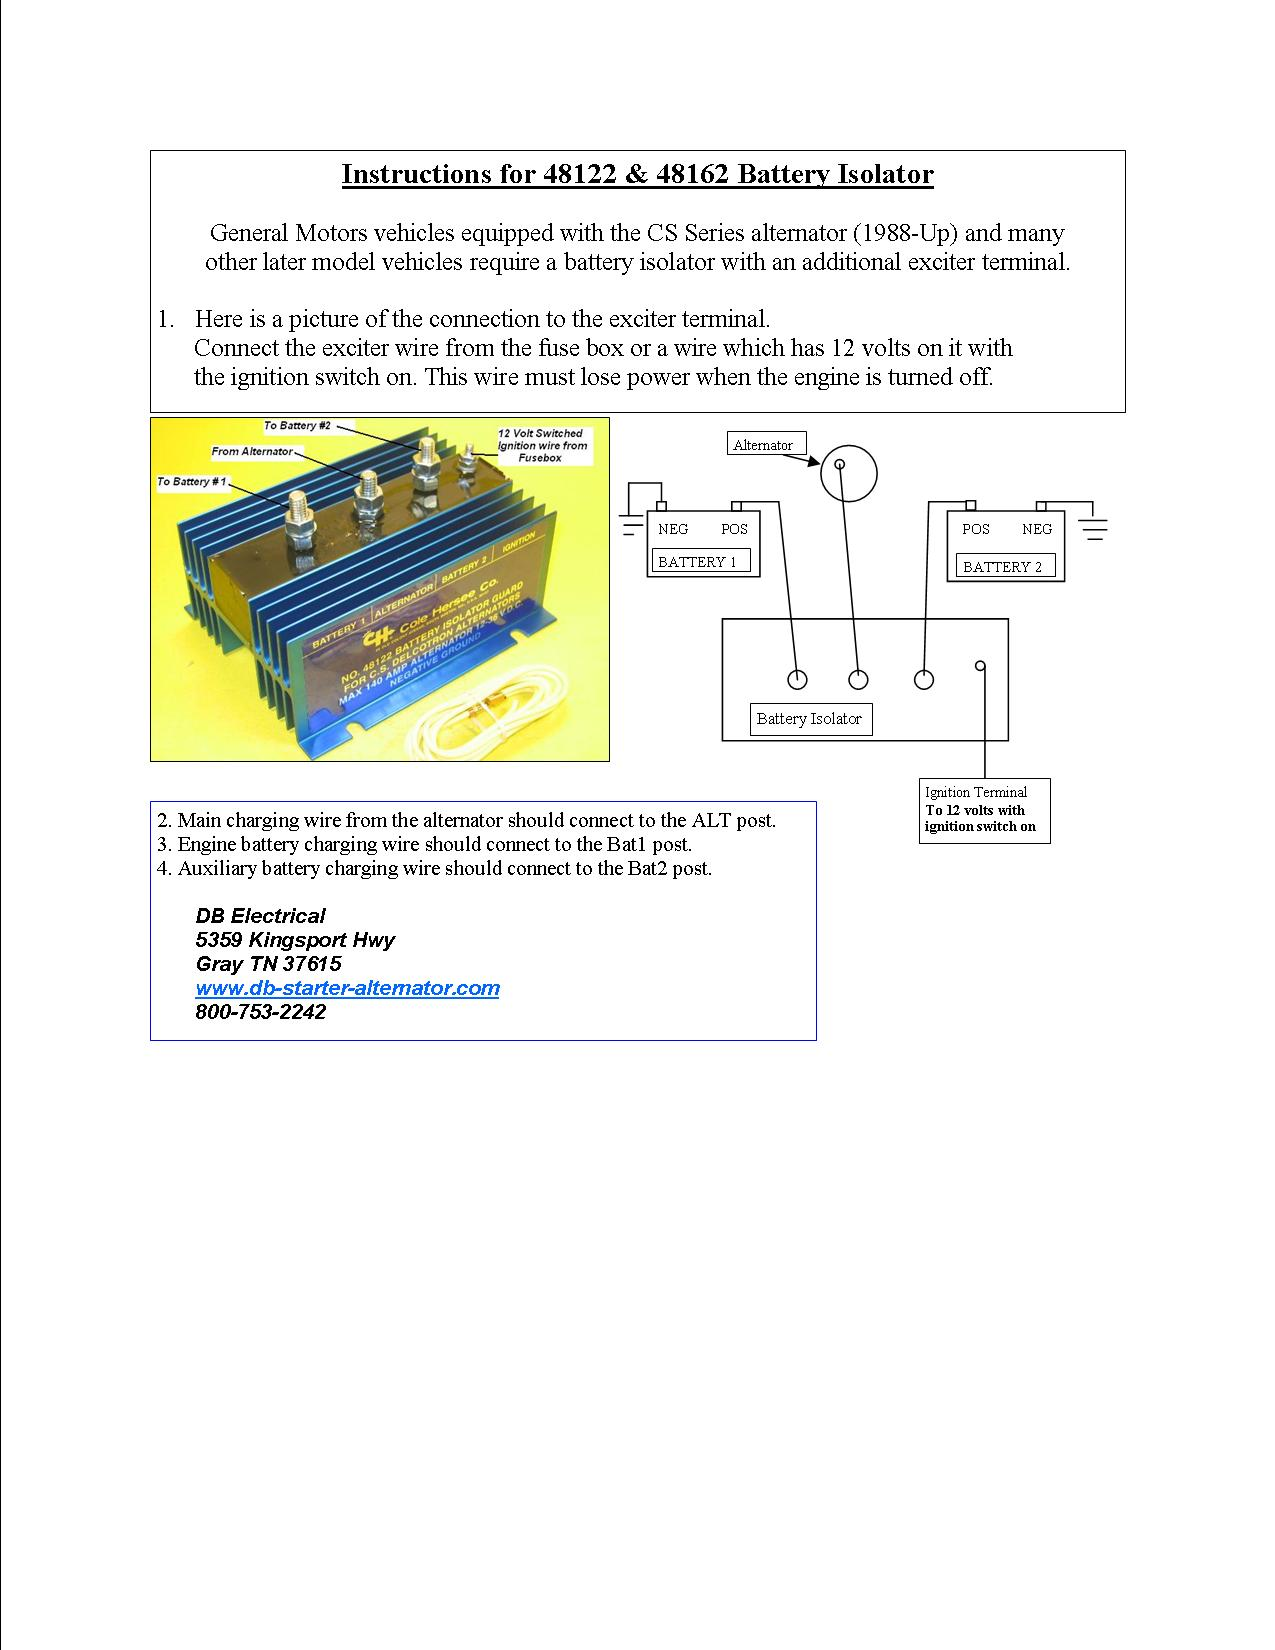 Ib 750 Battery Isolator Wiring Diagram Library Vehicle Alternator Cole Hersee Free 12v